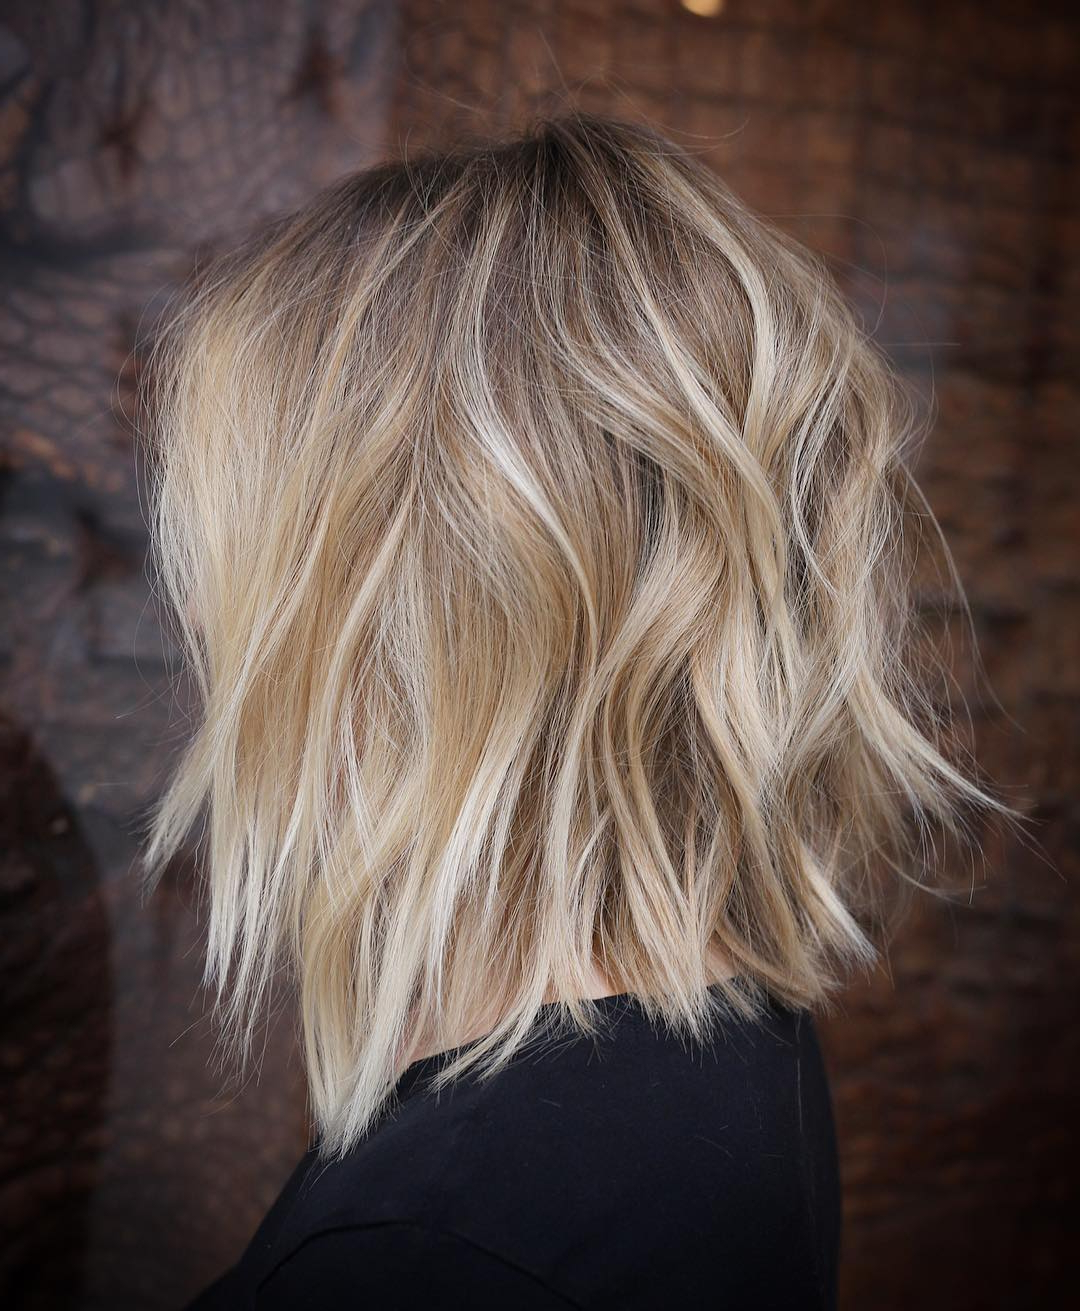 2017 Thick Feathered Blonde Lob Hairstyles With Regard To 10 Stylish Lob Hairstyle Ideas, Best Shoulder Length Hair (View 5 of 20)